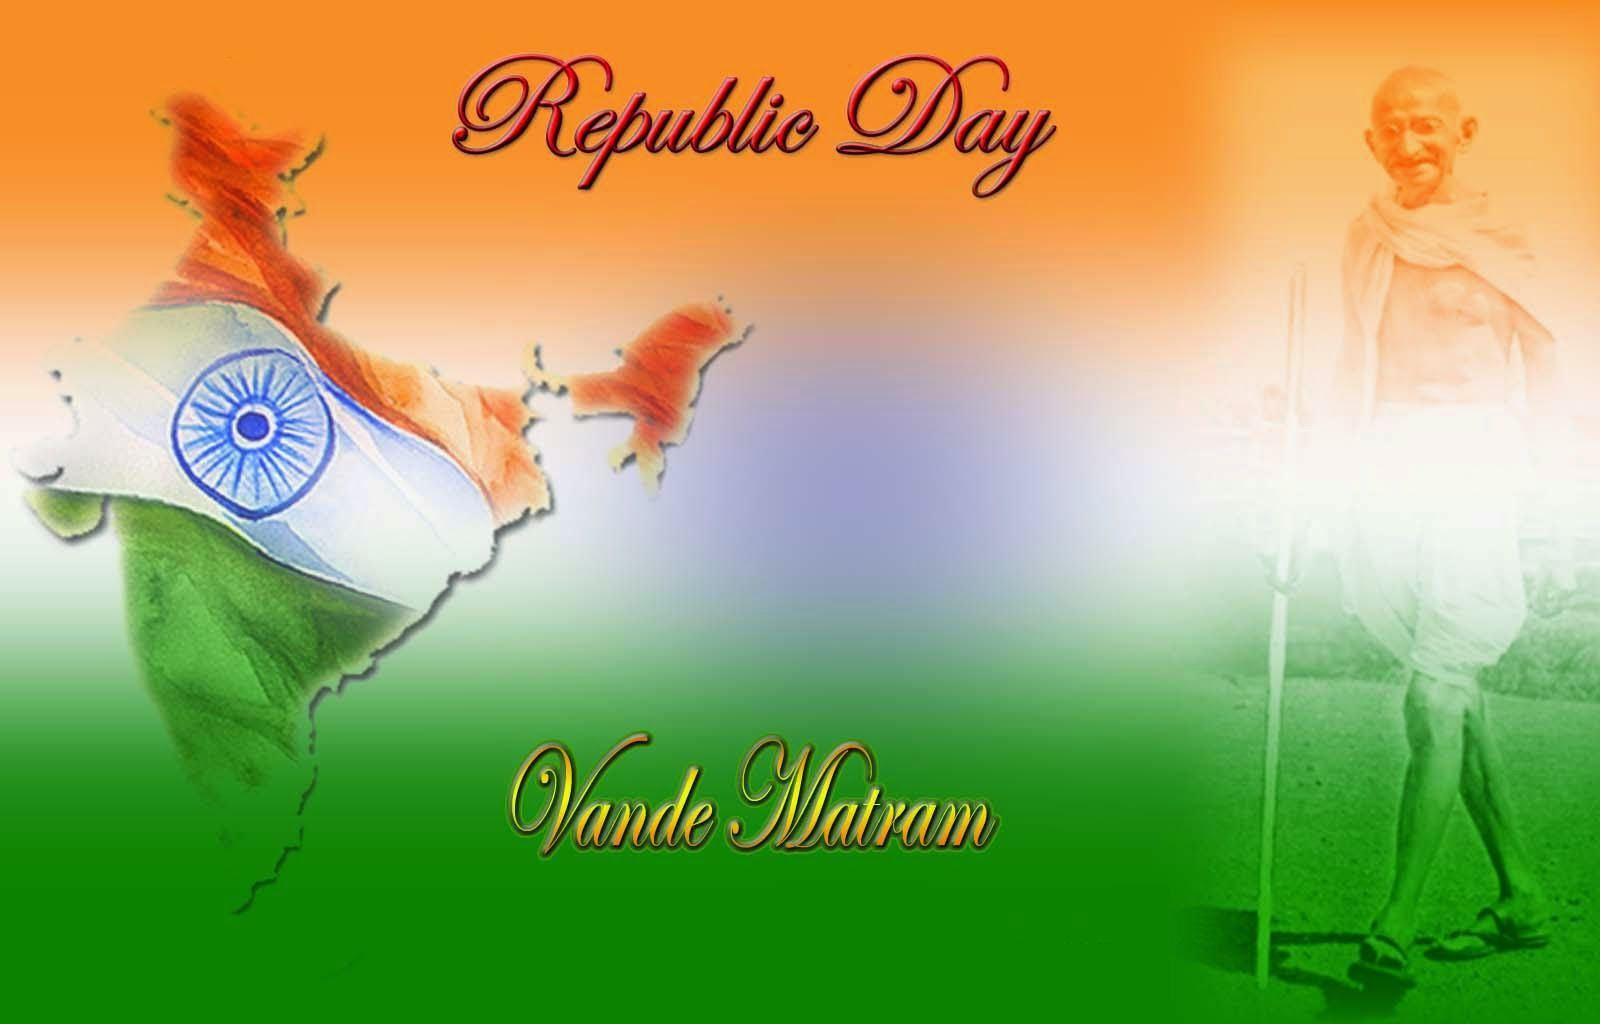 Image Result For Greeting Card Republic Day S Pinterest